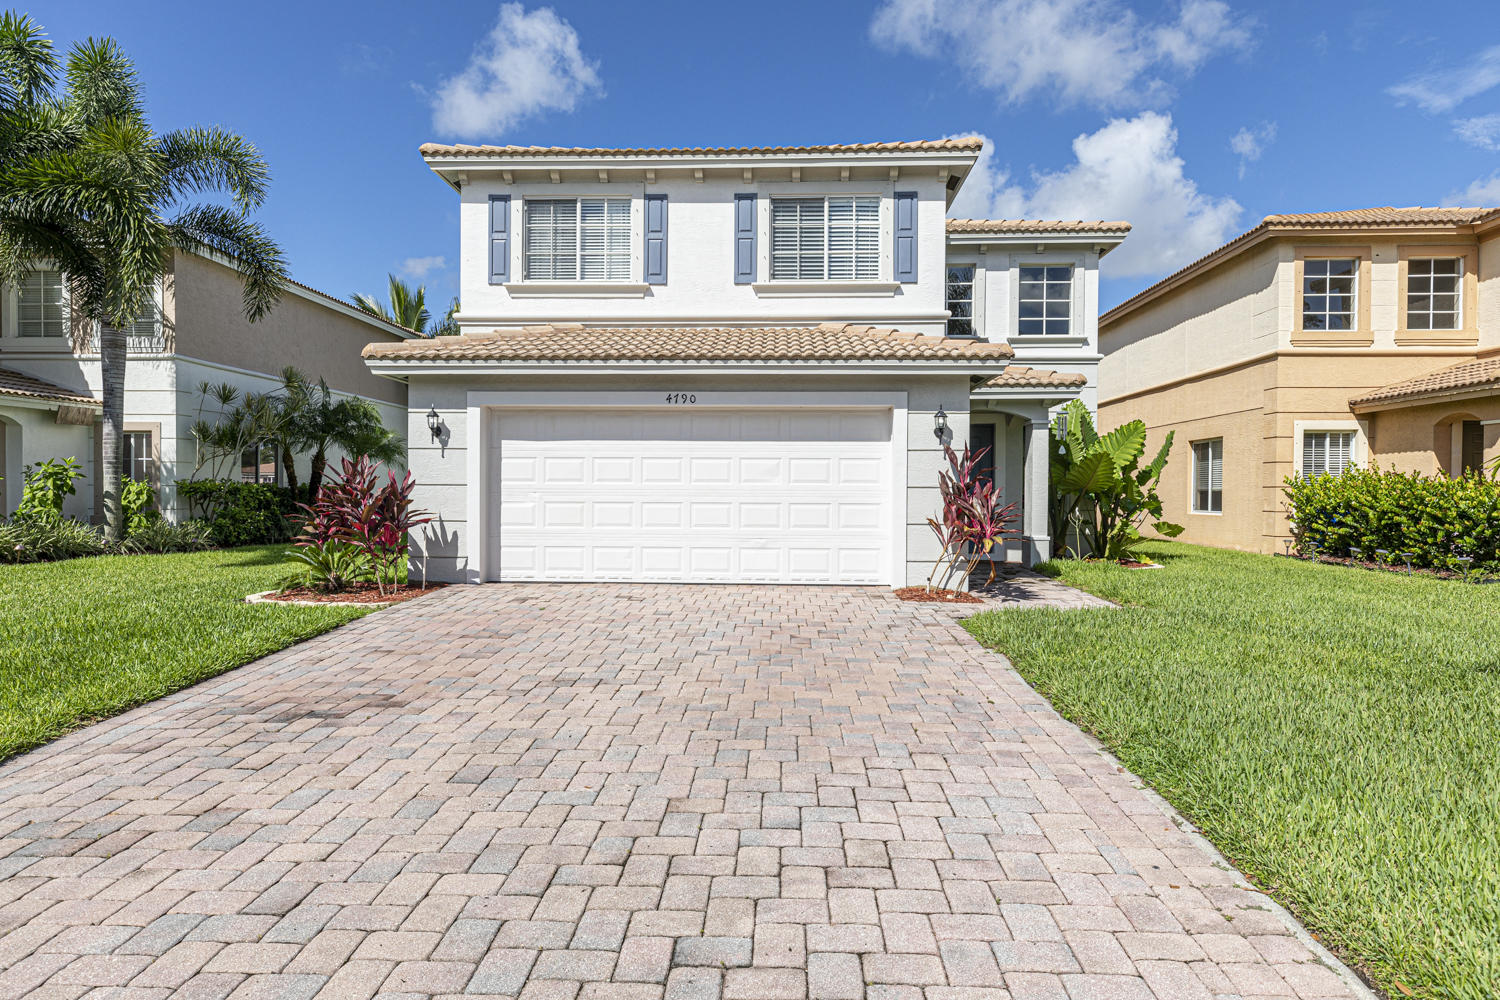 4790 Chiles Court, Stuart, Florida 34997, 4 Bedrooms Bedrooms, ,2.1 BathroomsBathrooms,A,Single family,Chiles,RX-10555485